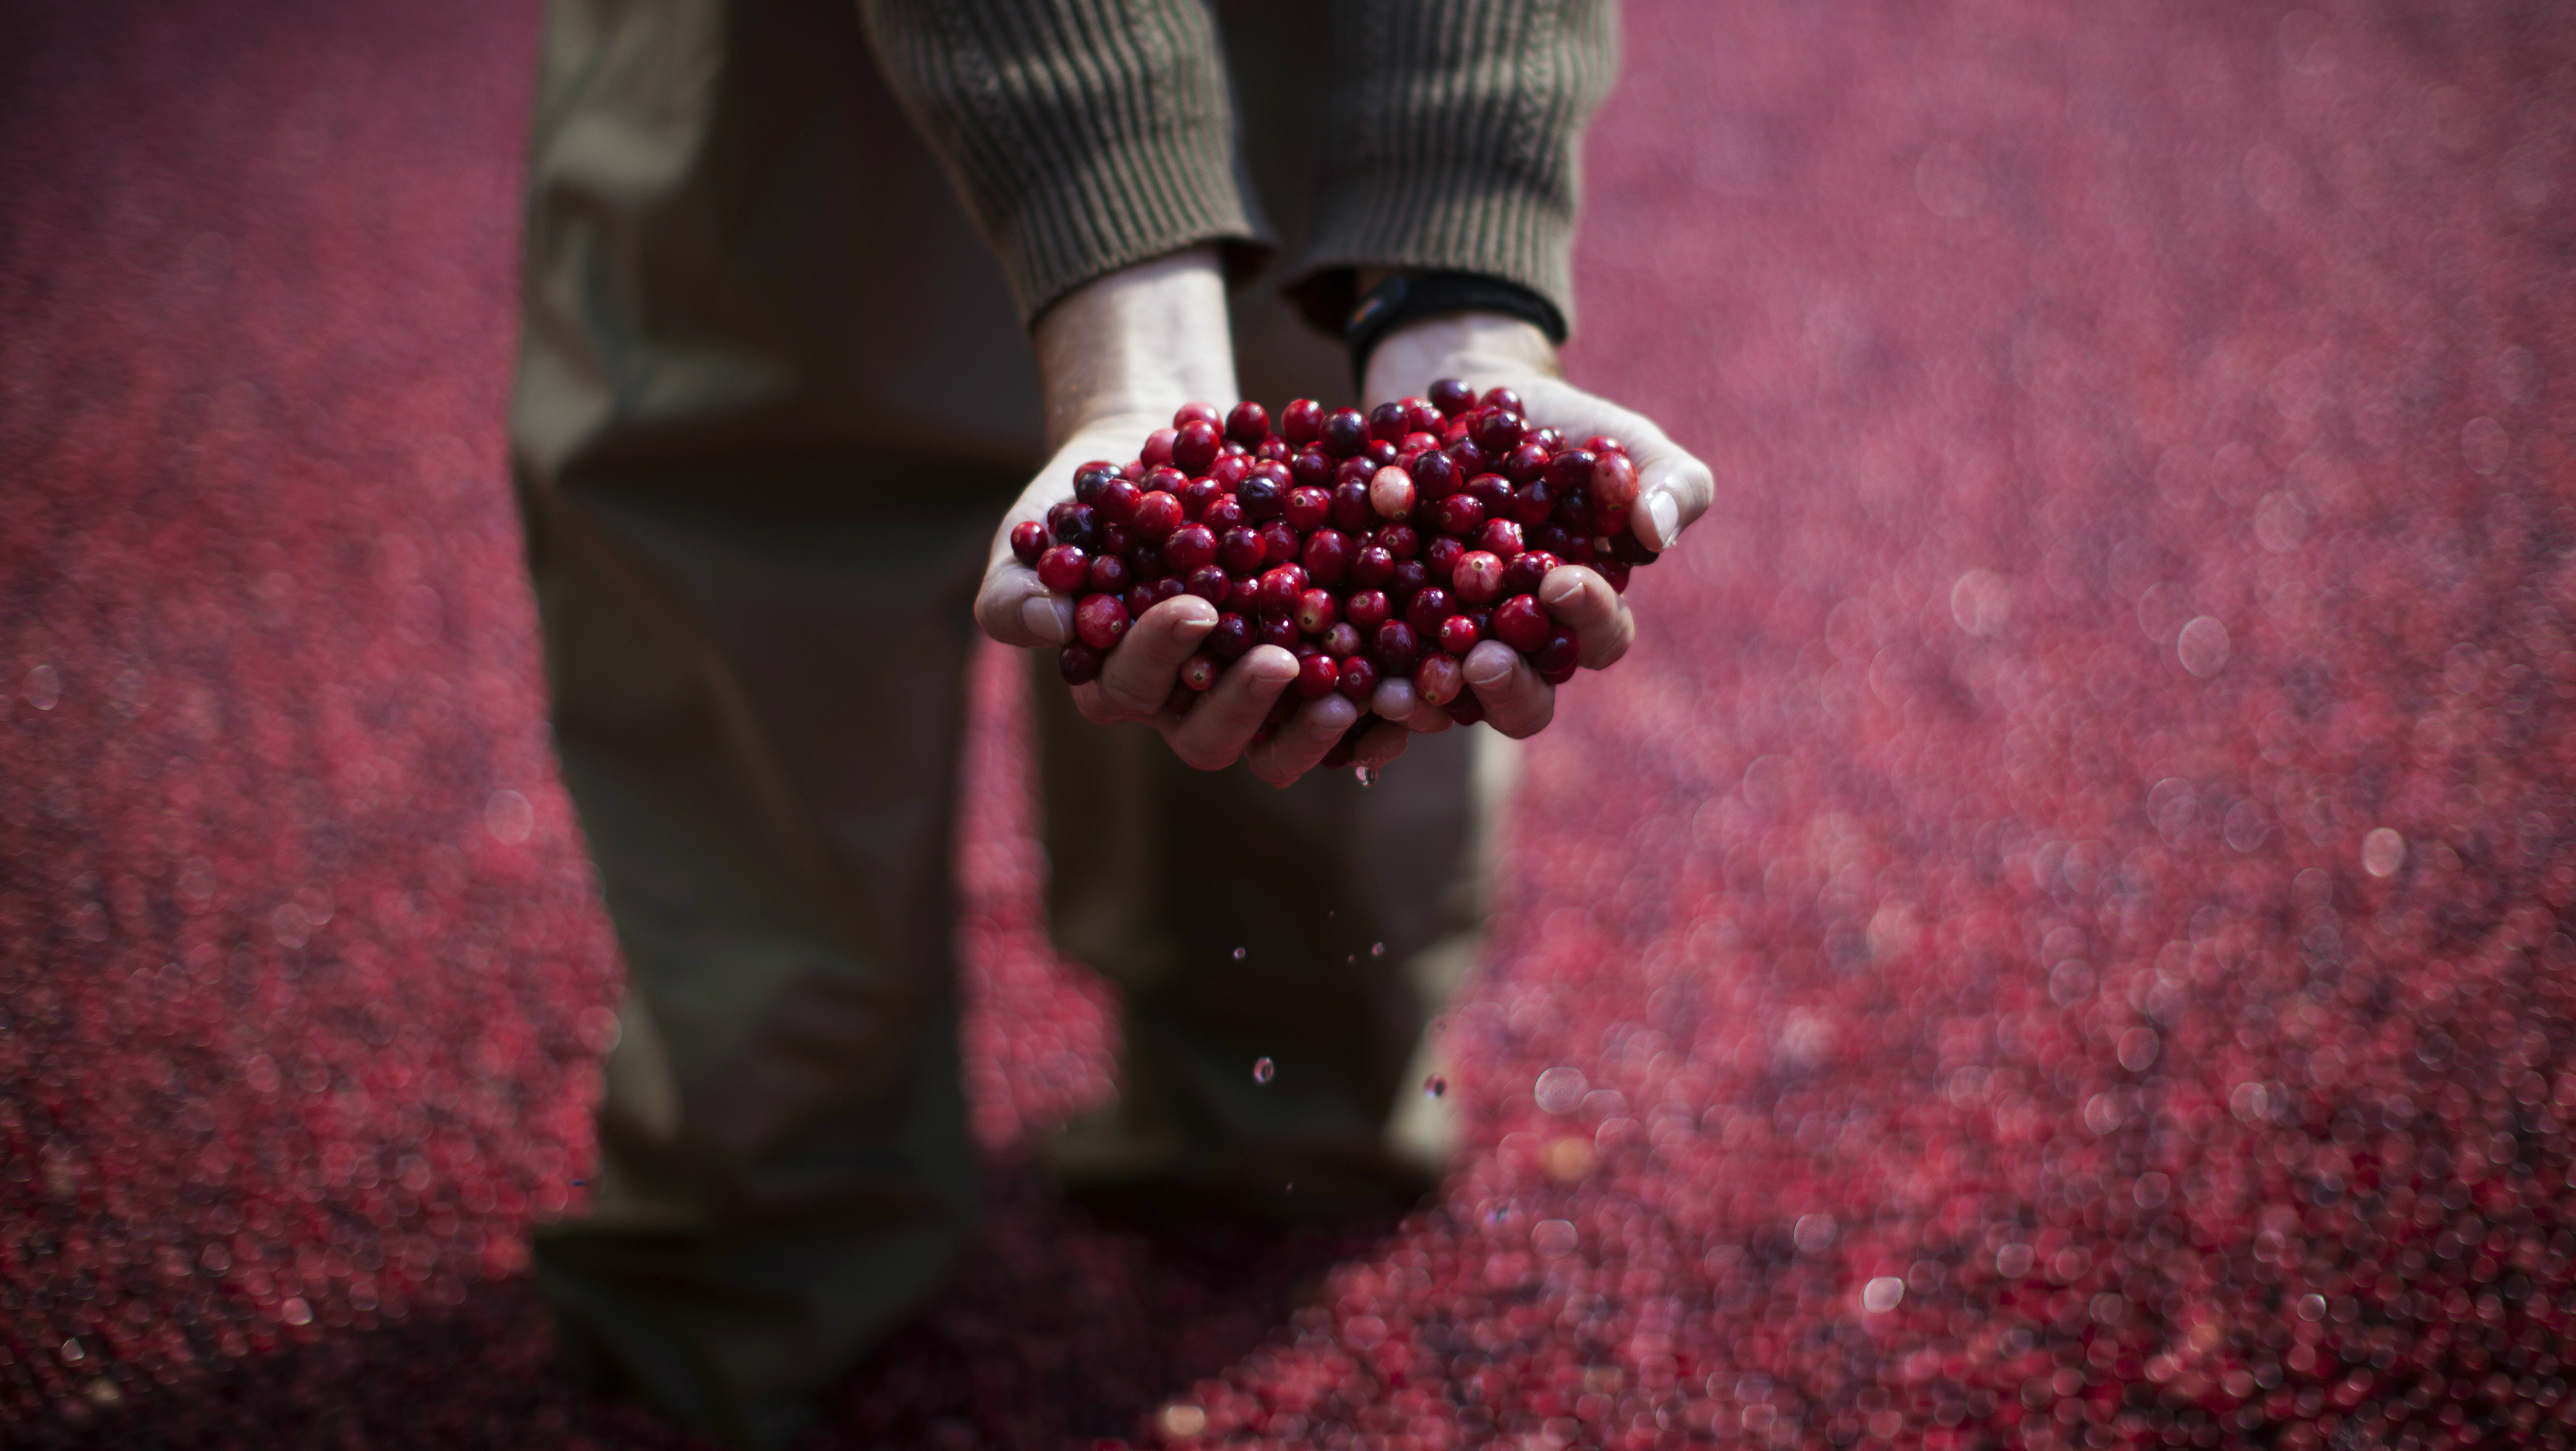 An employee of the Ocean Spray company holds cranberries as he stands in a pool of some 2000 pounds (907 kg) of floating cranberries at a promotional cranberry bog display set up at New York's Rockefeller Center, October 17, 2014. The exhibit in the heavily trafficked area of midtown Manhattan has cranberry farmers and scientists from the company on hand to answer questions about their cranberry products' health benefits and the growing process. REUTERS/Mike Segar (UNITED STATES - Tags: SOCIETY FOOD AGRICULTURE BUSINESS TPX IMAGES OF THE DAY)